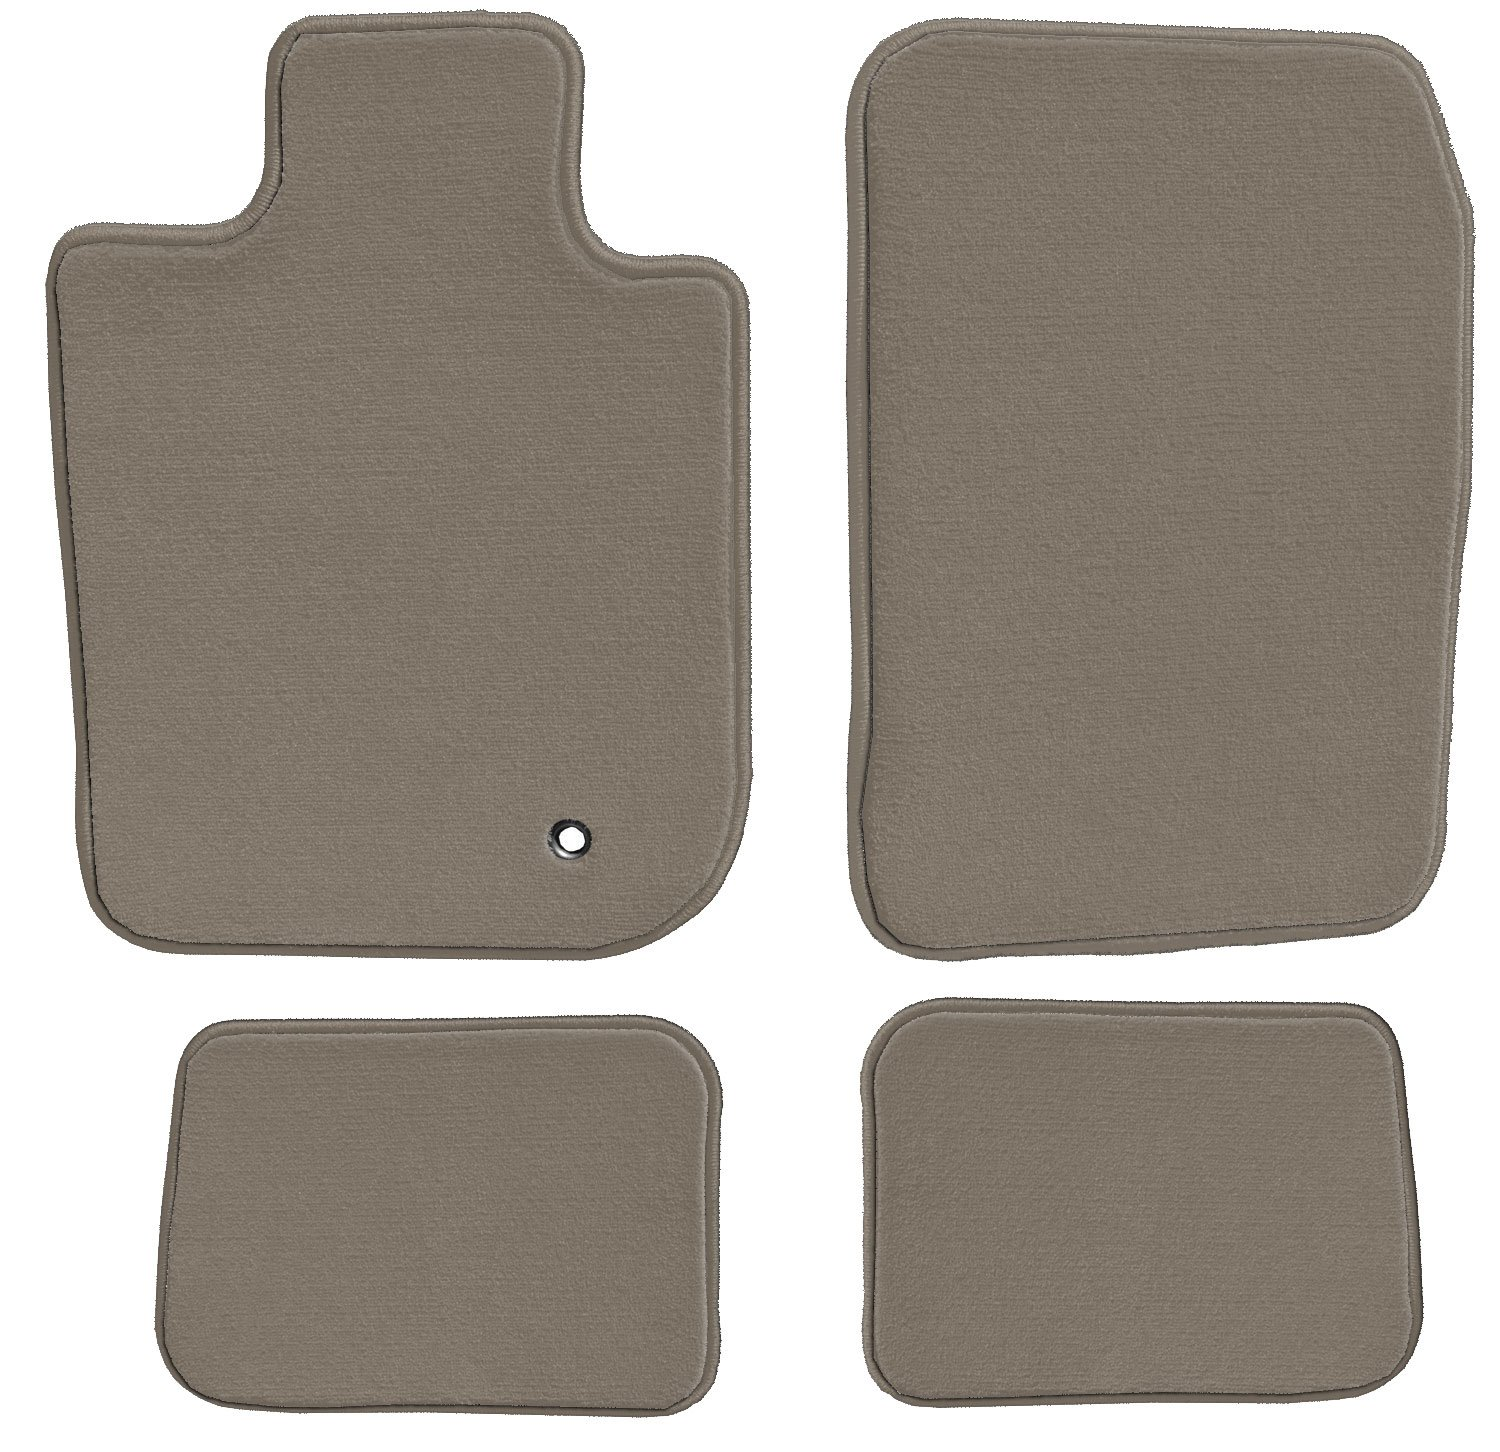 2004 Ford Focus SVT Beige Loop Driver 2003 GGBAILEY D4352A-S1A-BG-LP Custom Fit Car Mats for 2002 Passenger /& Rear Floor